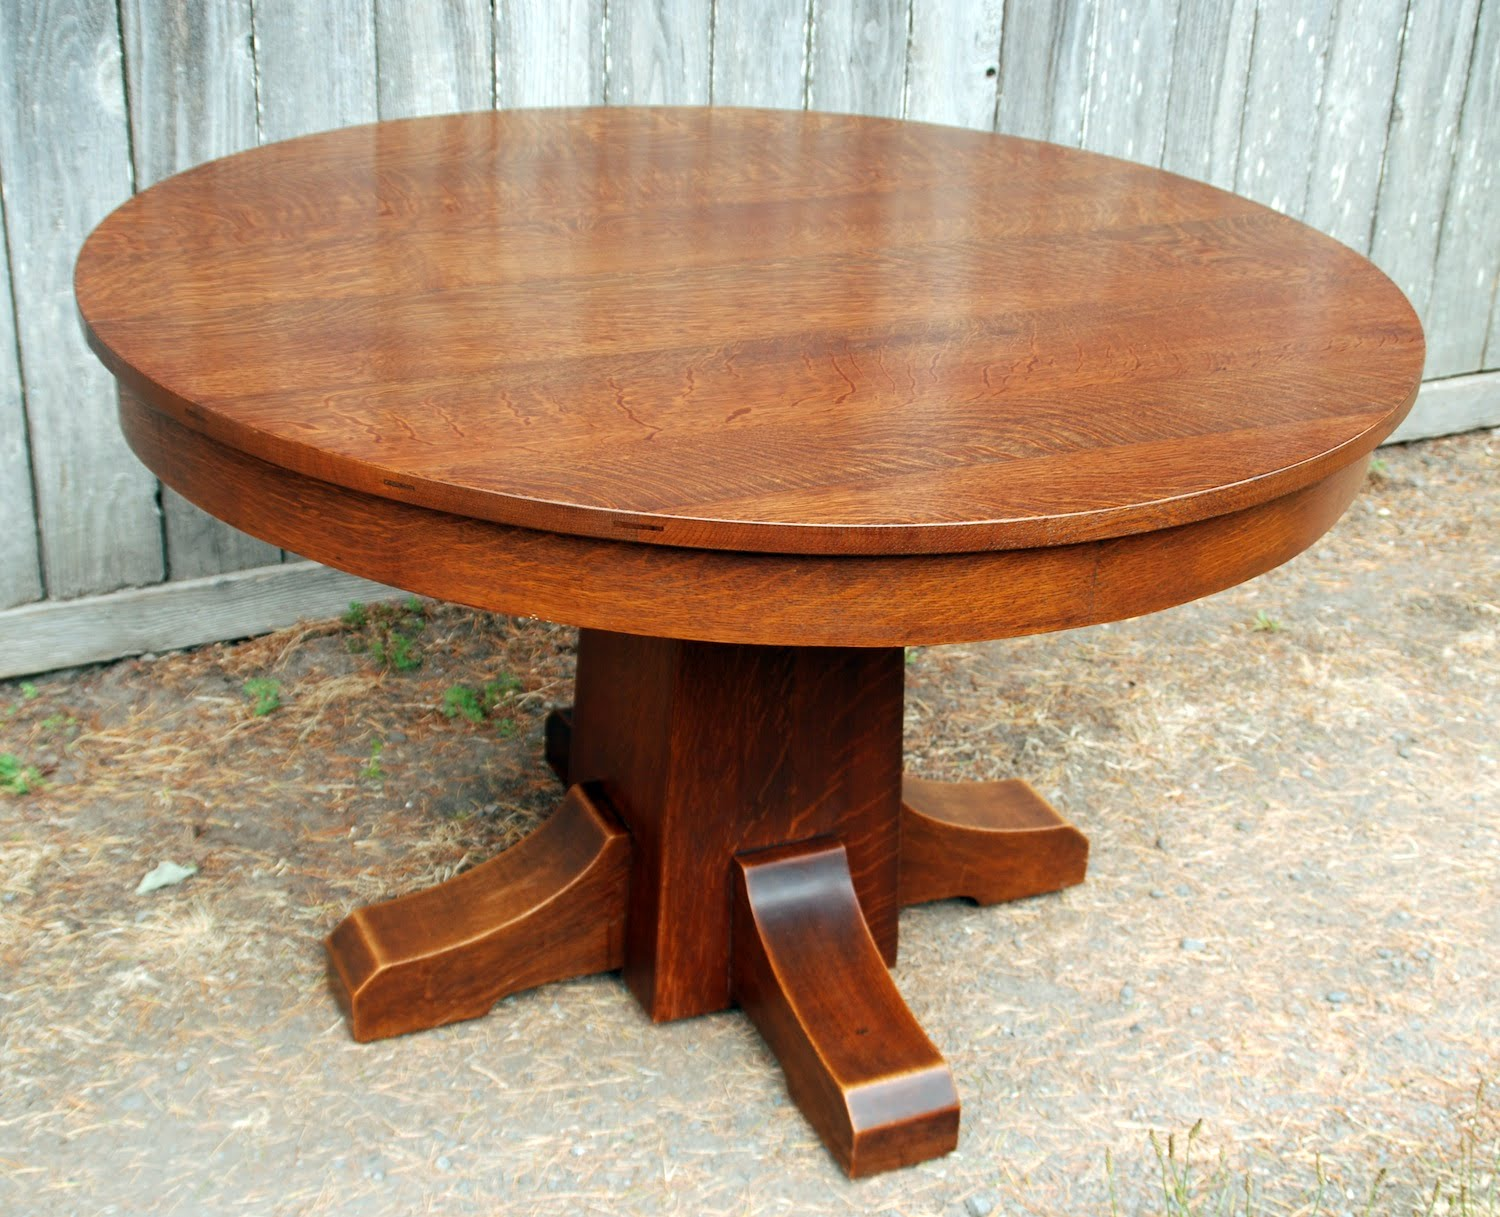 ... Shabby Chic Dining Table And Chairs. on vintage mission oak furniture